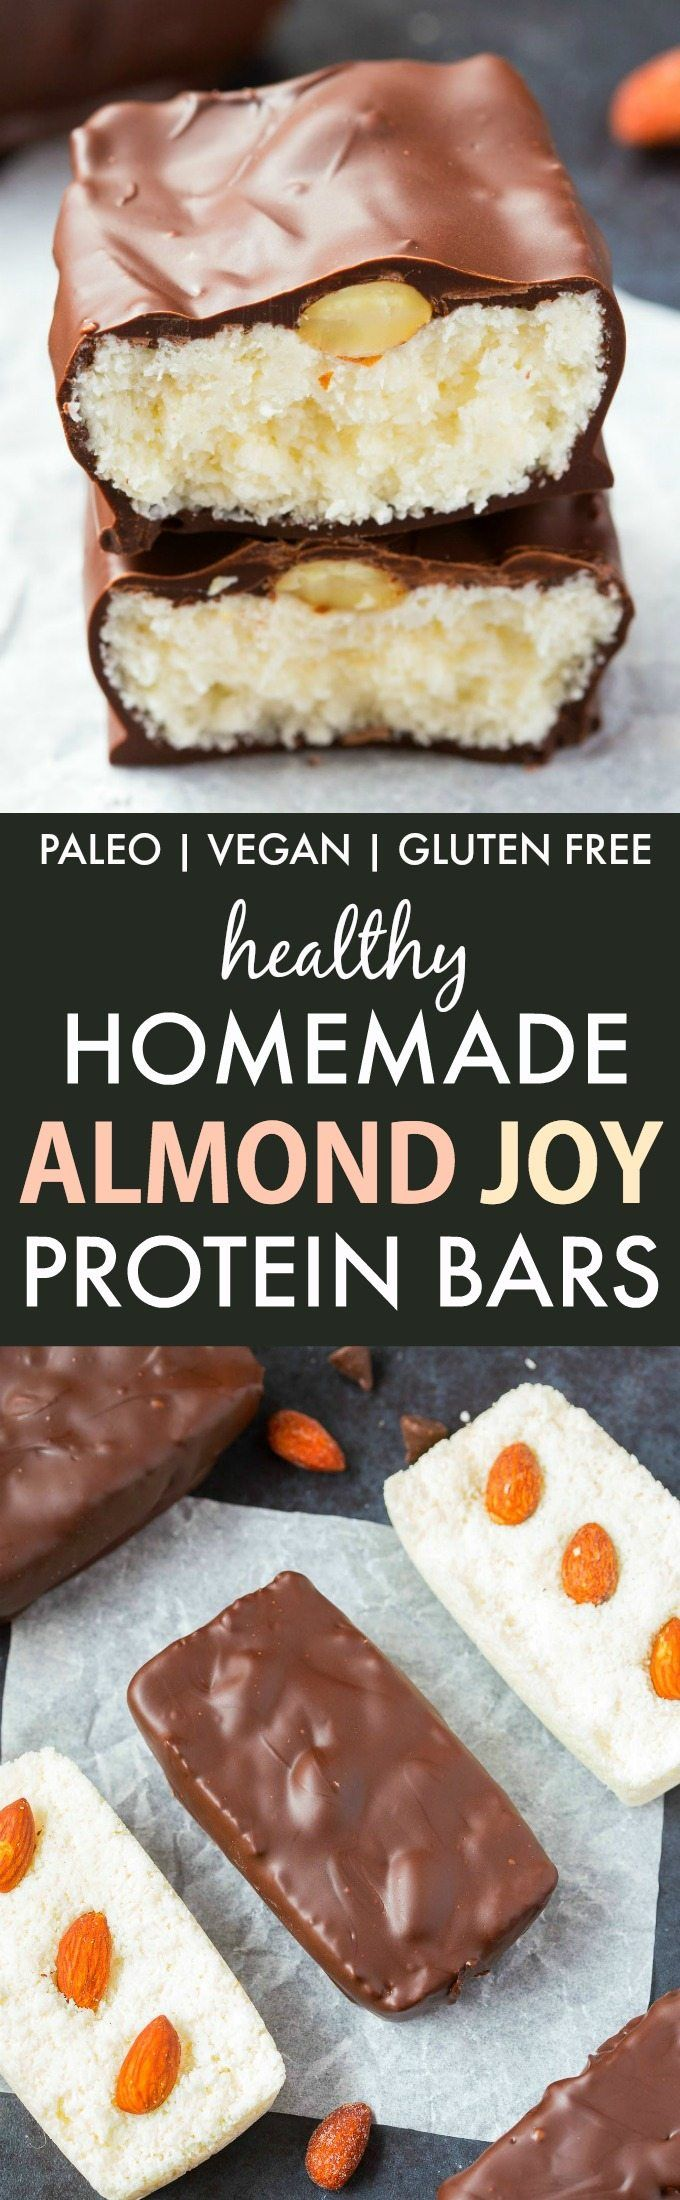 Homemade No Bake Almond Joy Bars (Paleo, Vegan, Gluten Free)- Easy and better than store bought, it needs just 6 ingredients and insanely delicious!